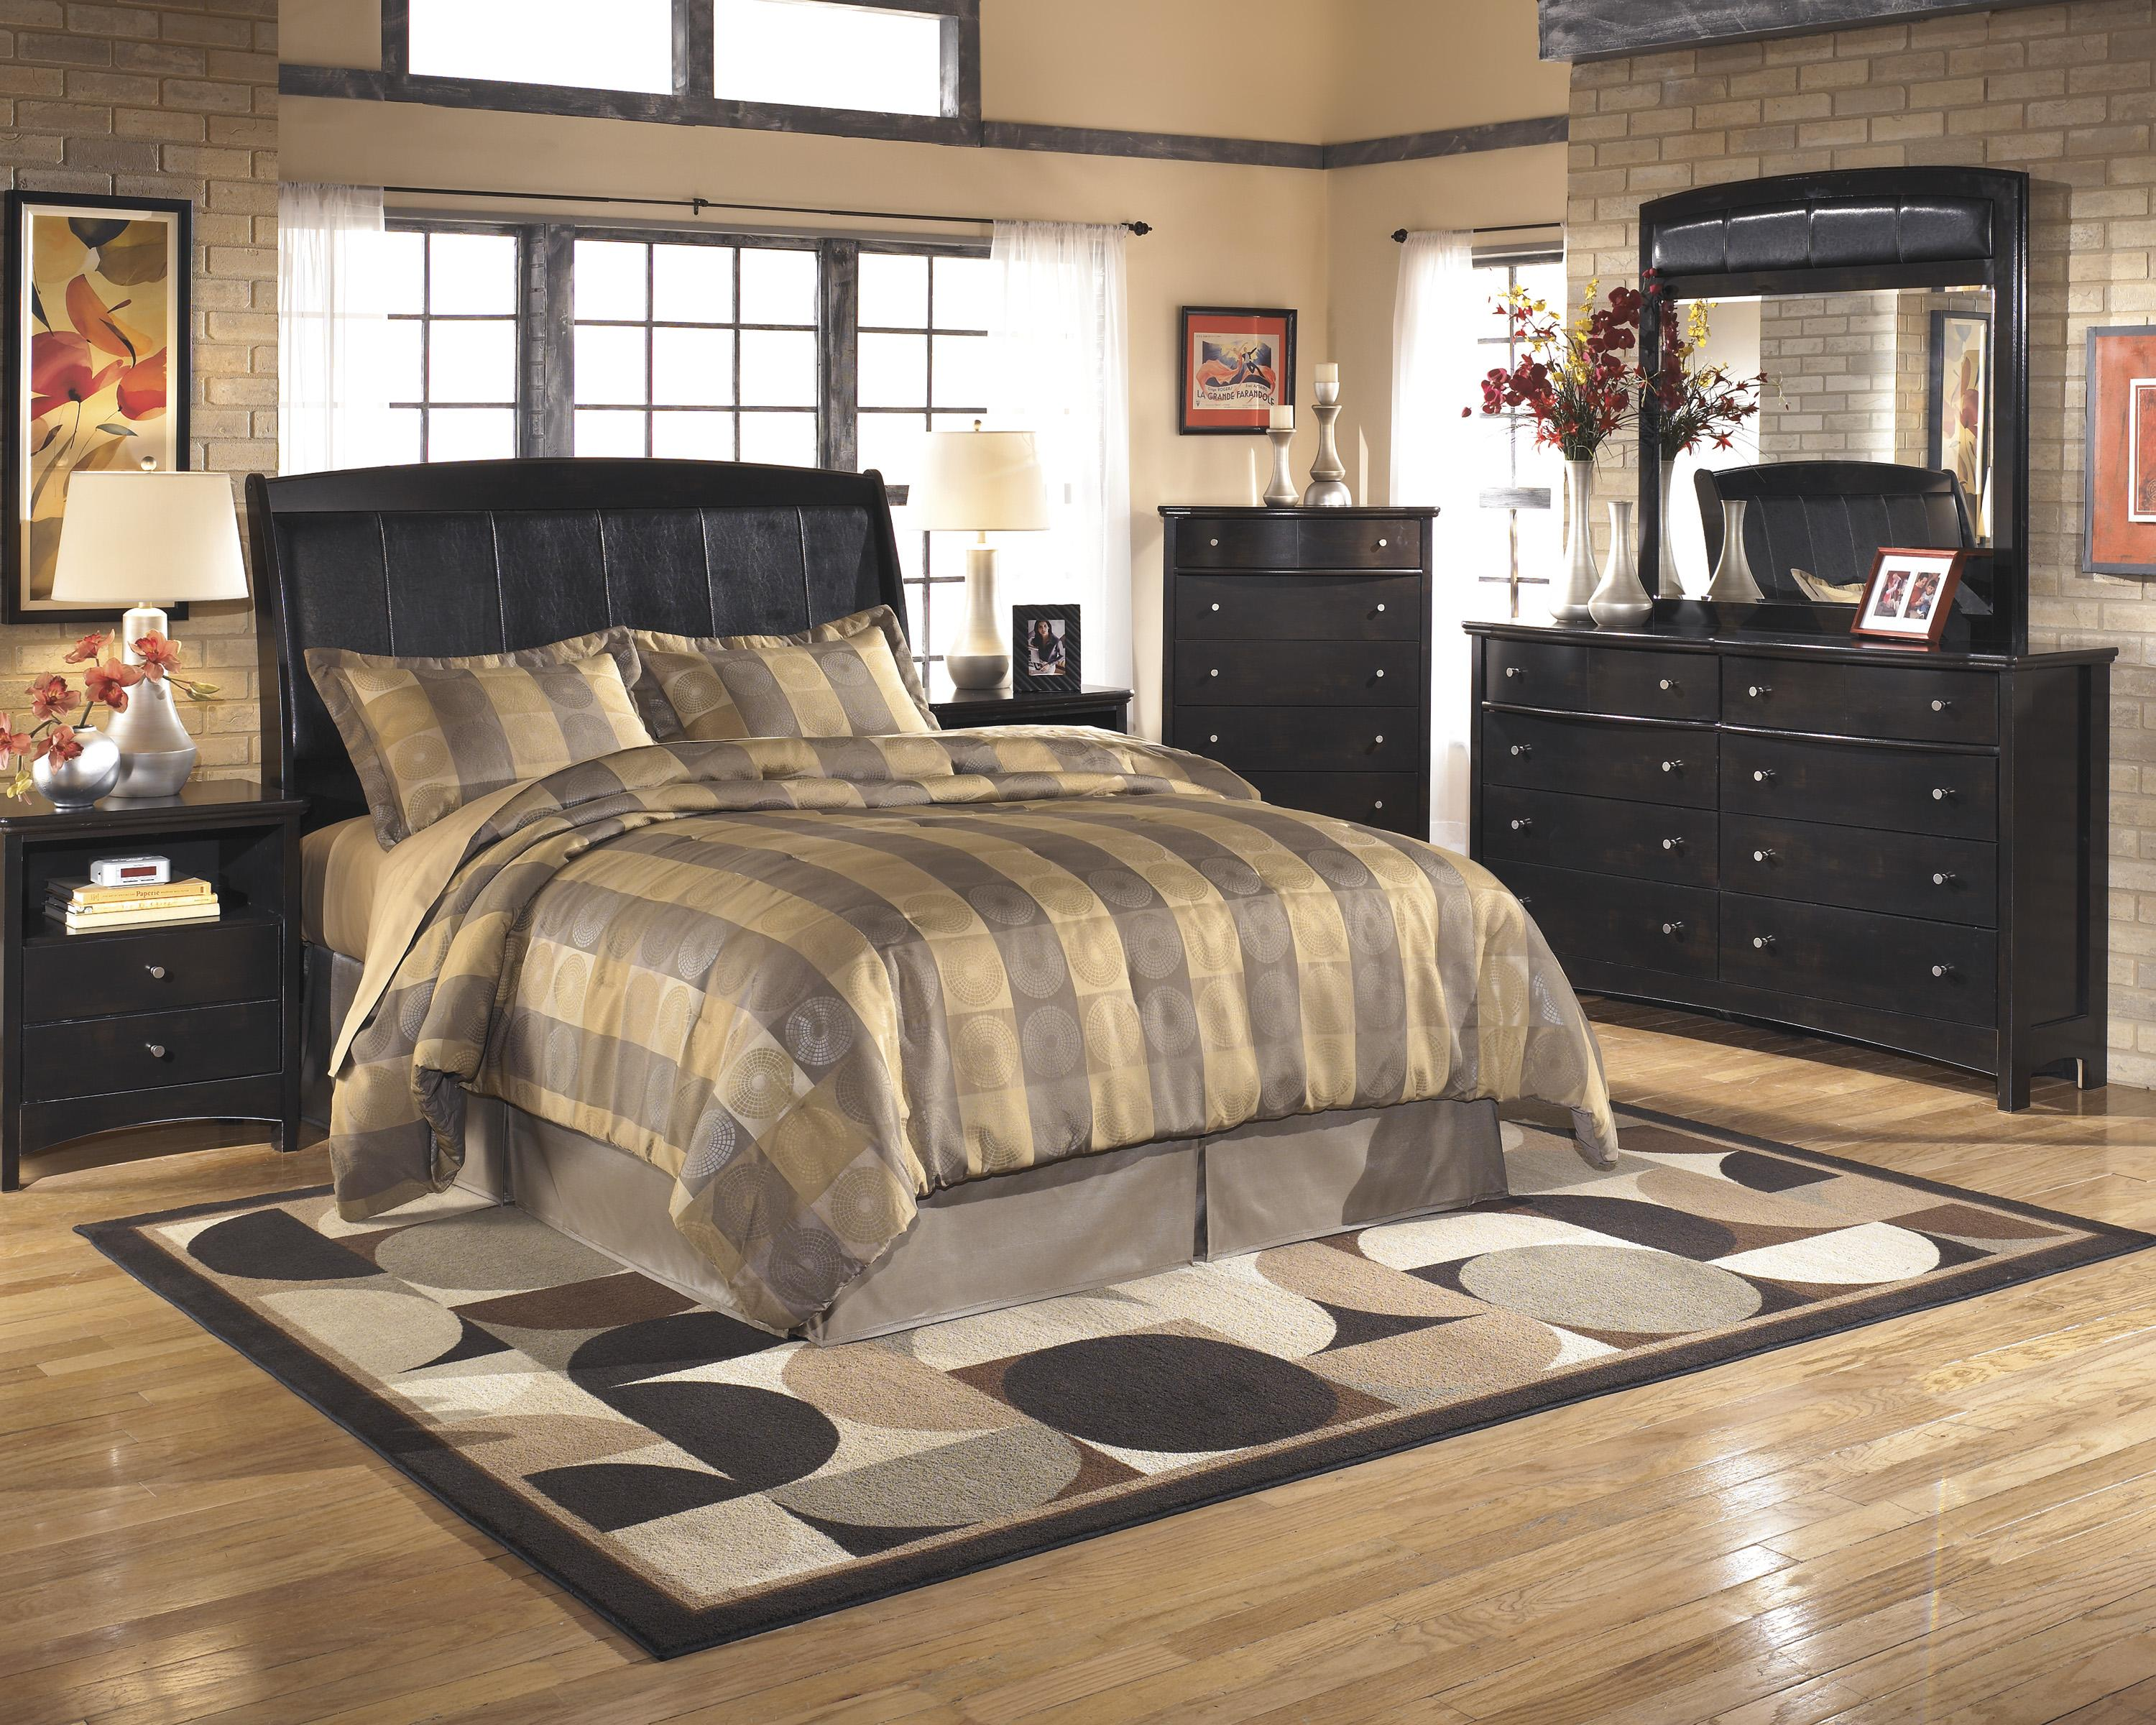 Signature Design by Ashley Harmony Queen/Full Bedroom Group - Item Number: B208 Q Bedroom Group 3